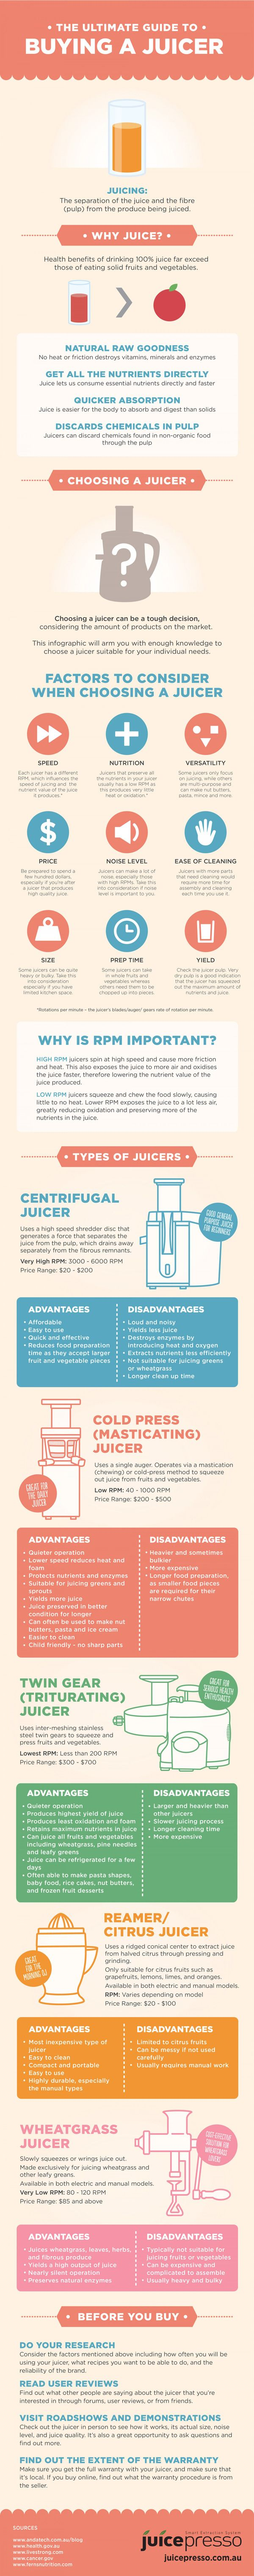 Best Juicers For 2017 - Complete Buying Guide - via @nutr